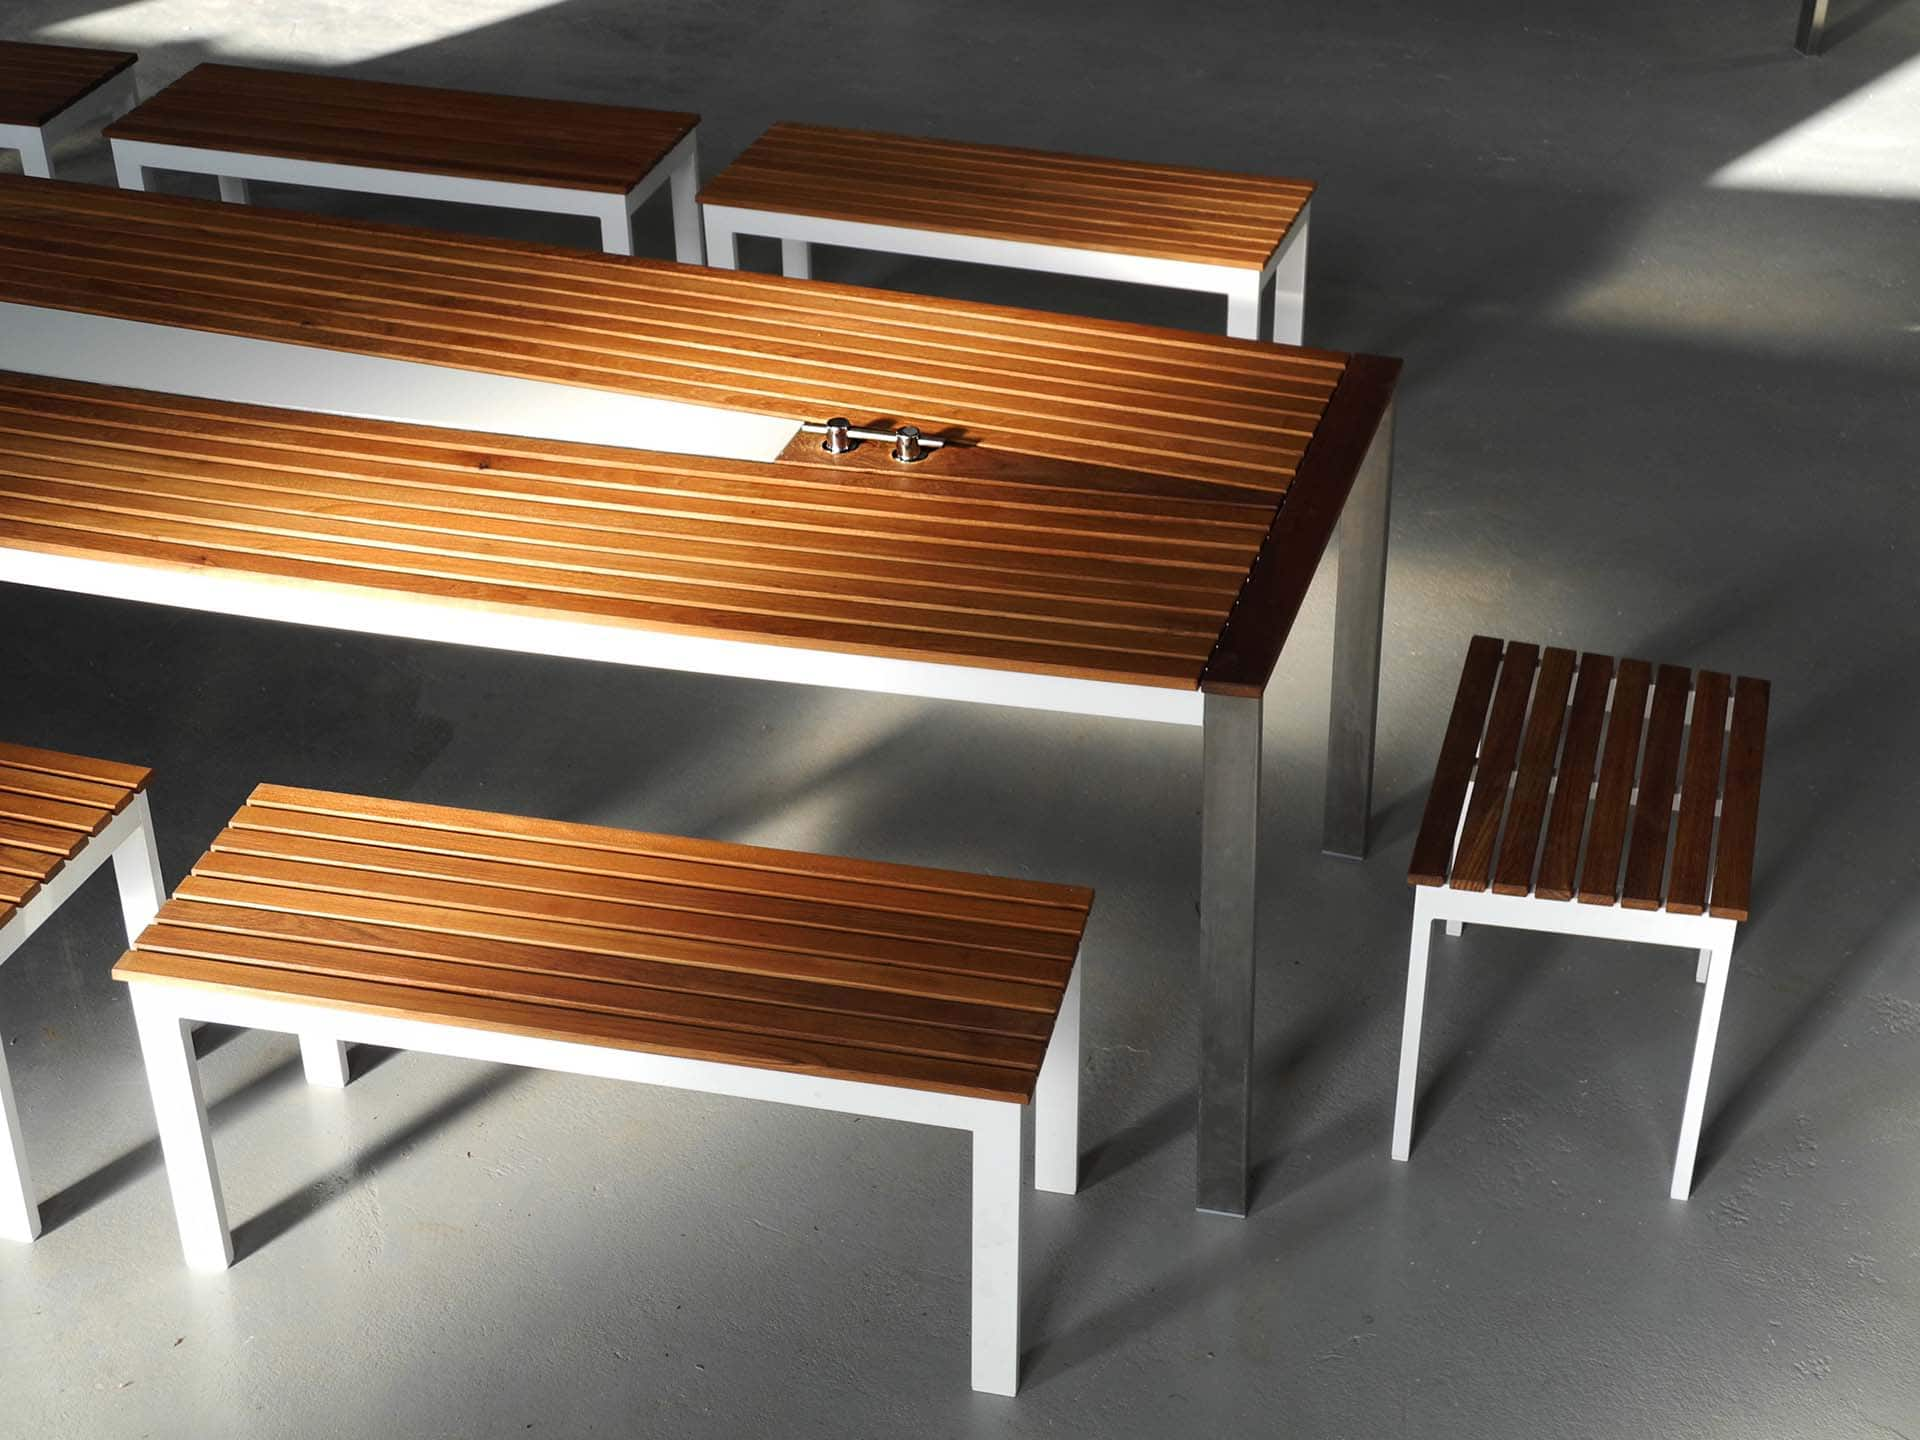 Design Tisch Sealine Nummer 6 aus Metall Holz by Sebastian Bohry timeless design